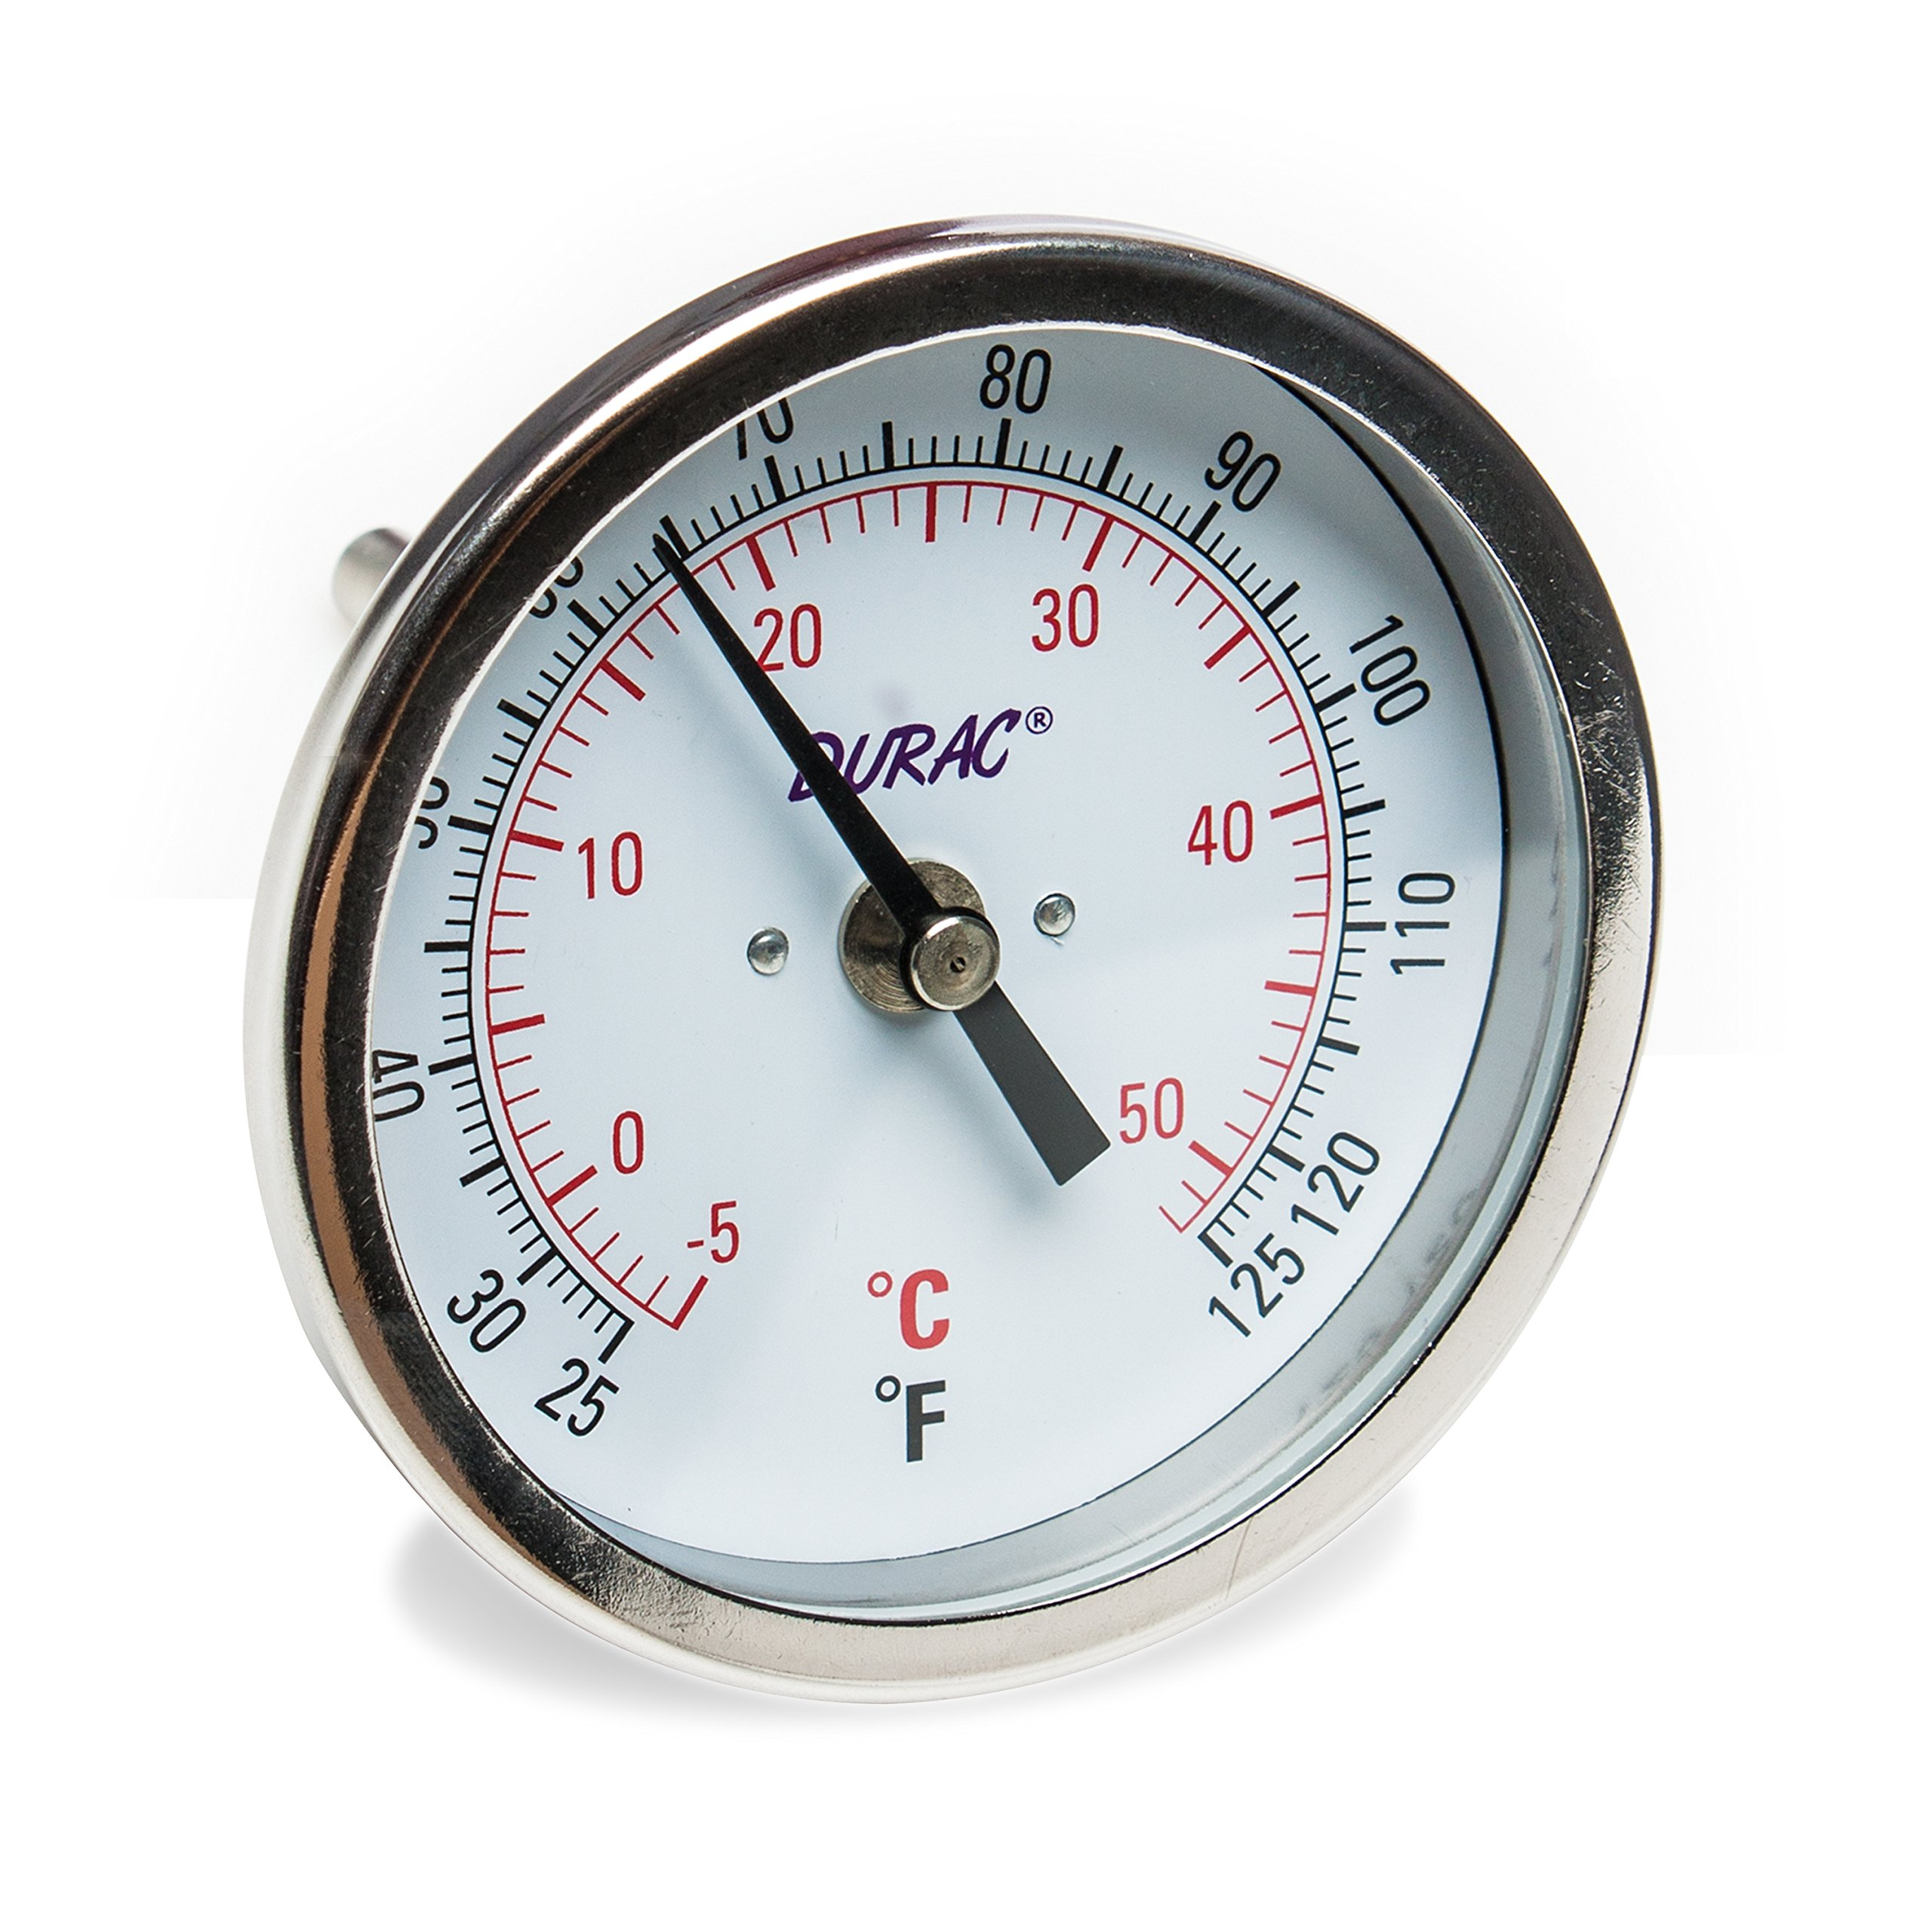 H-B DURAC Bi-Metallic Dial Thermometer; 0 to 50C (25 to 125F), 1/2 in. NPT Threaded Connection, 75mm Dial (B61310-6800)